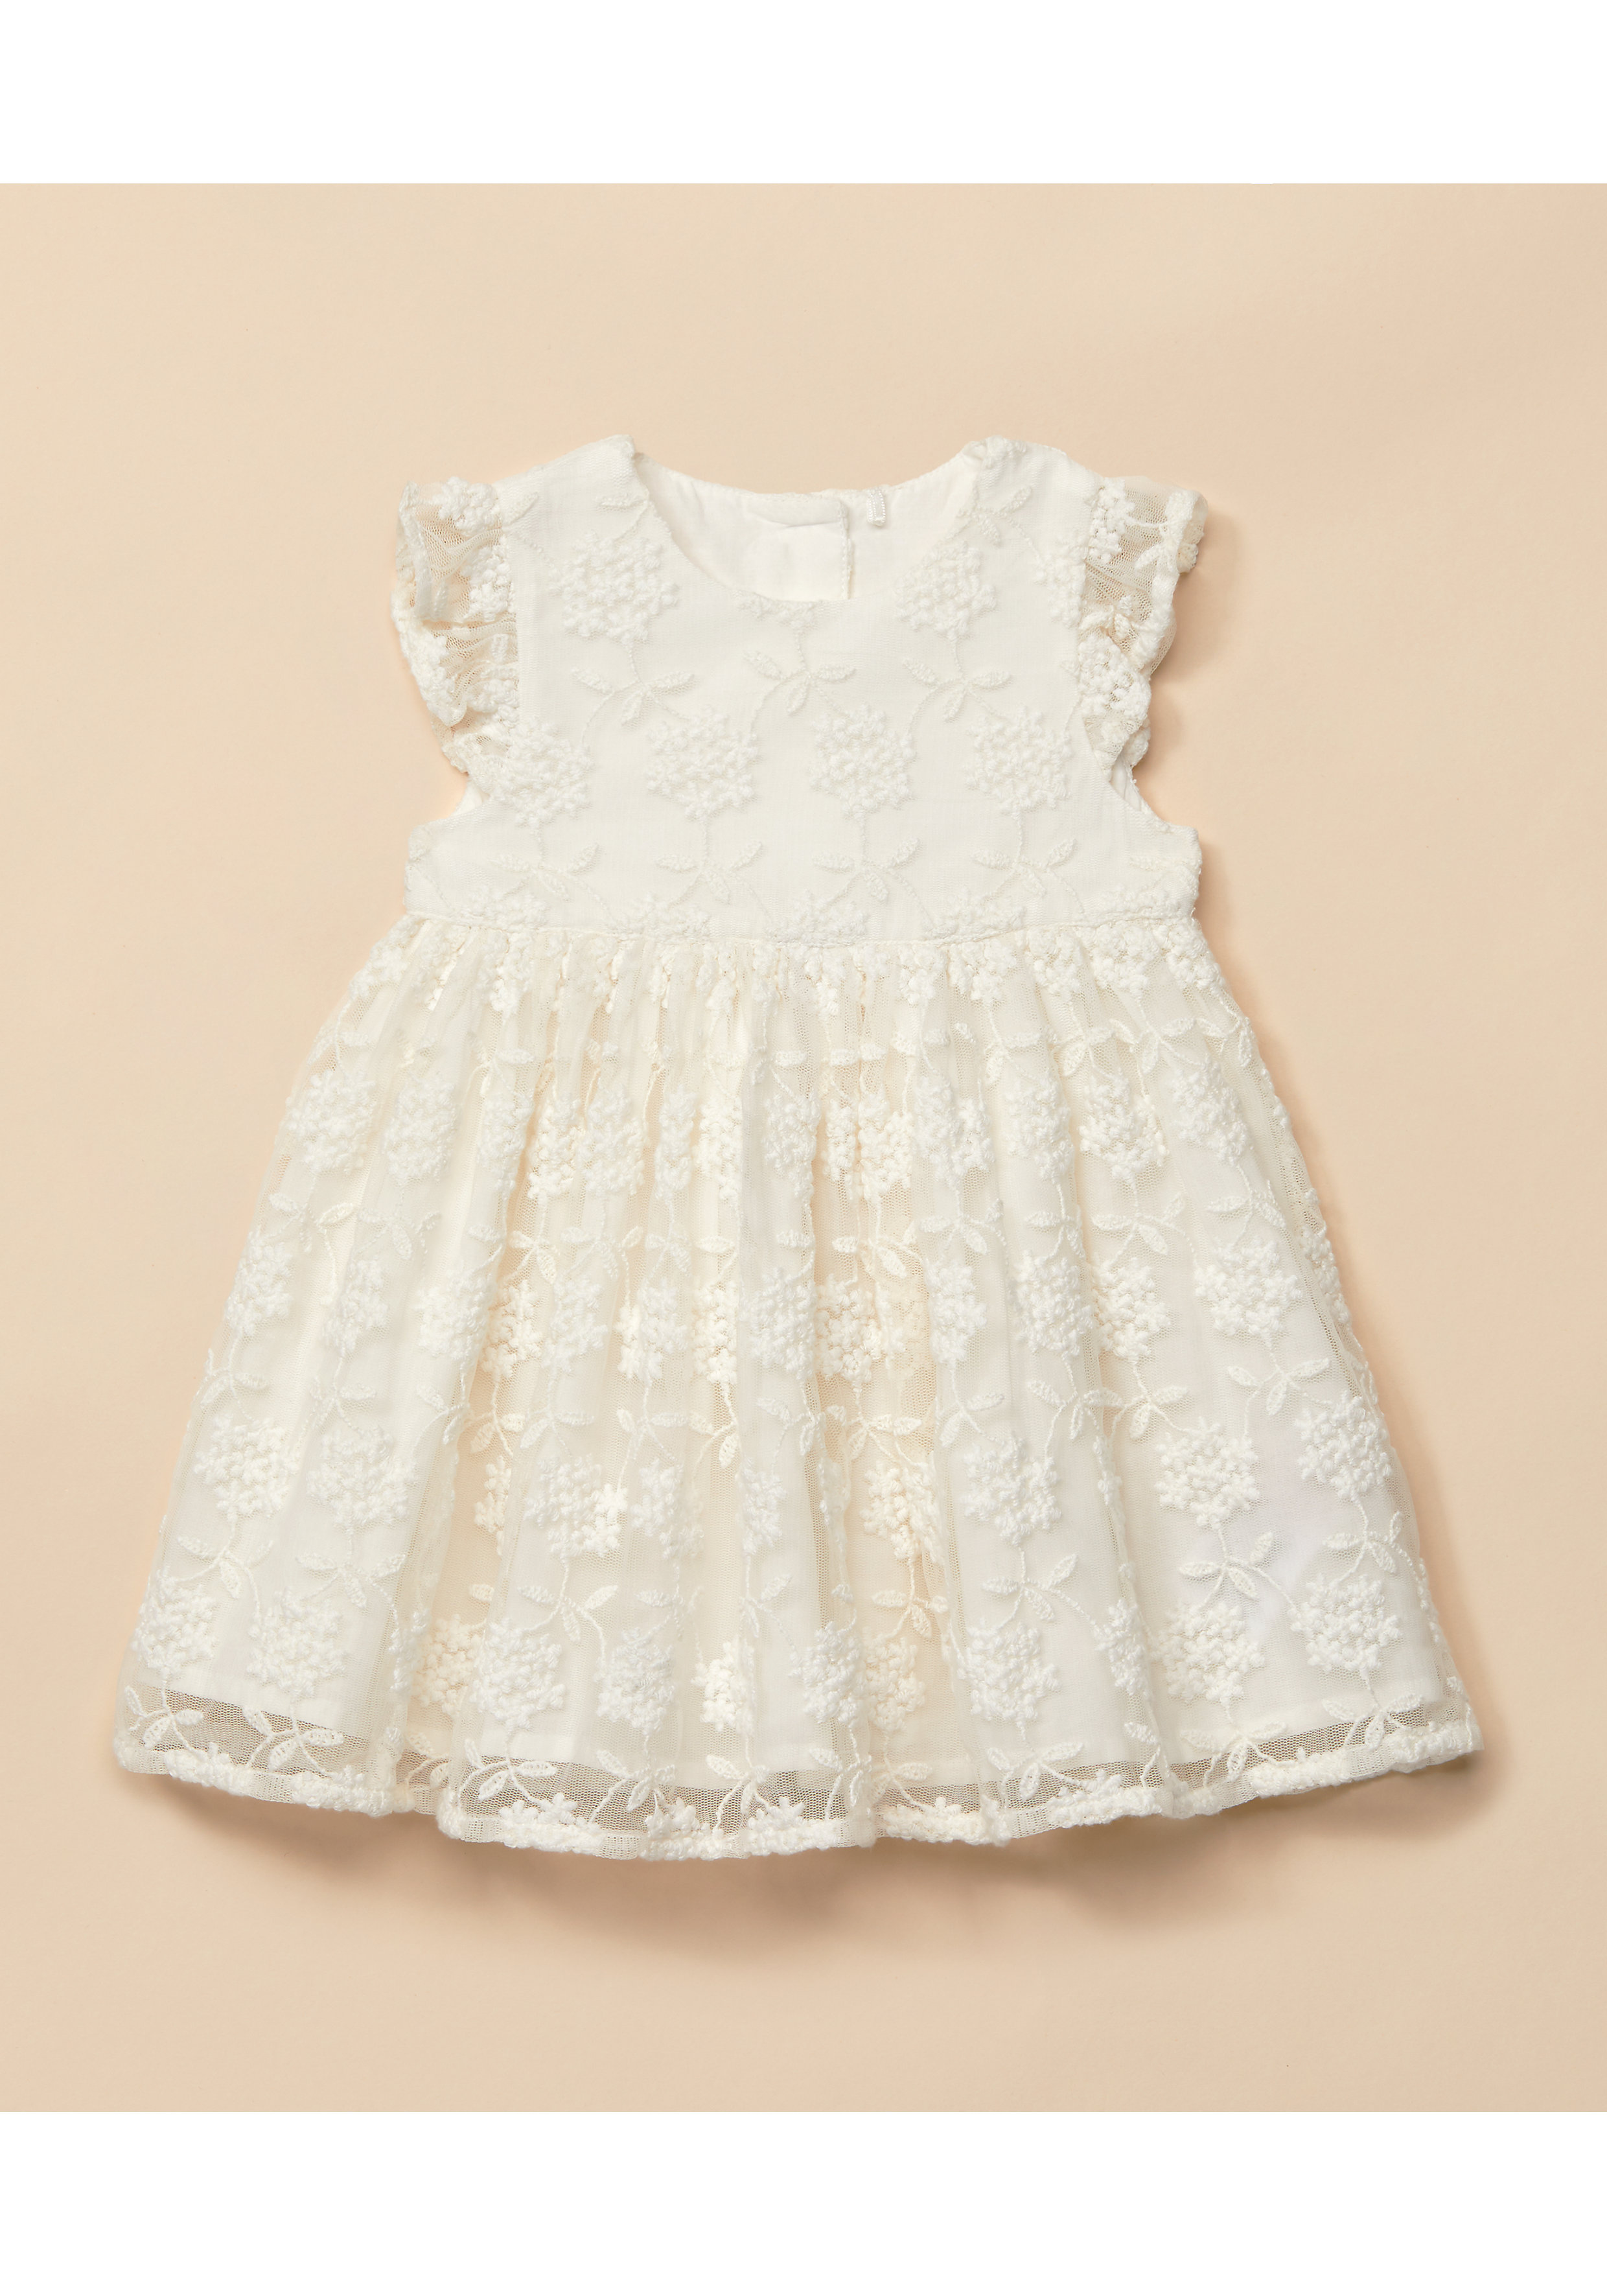 Mothercare | Girls Half Sleeves Floral Embroidery Mesh Dress - White